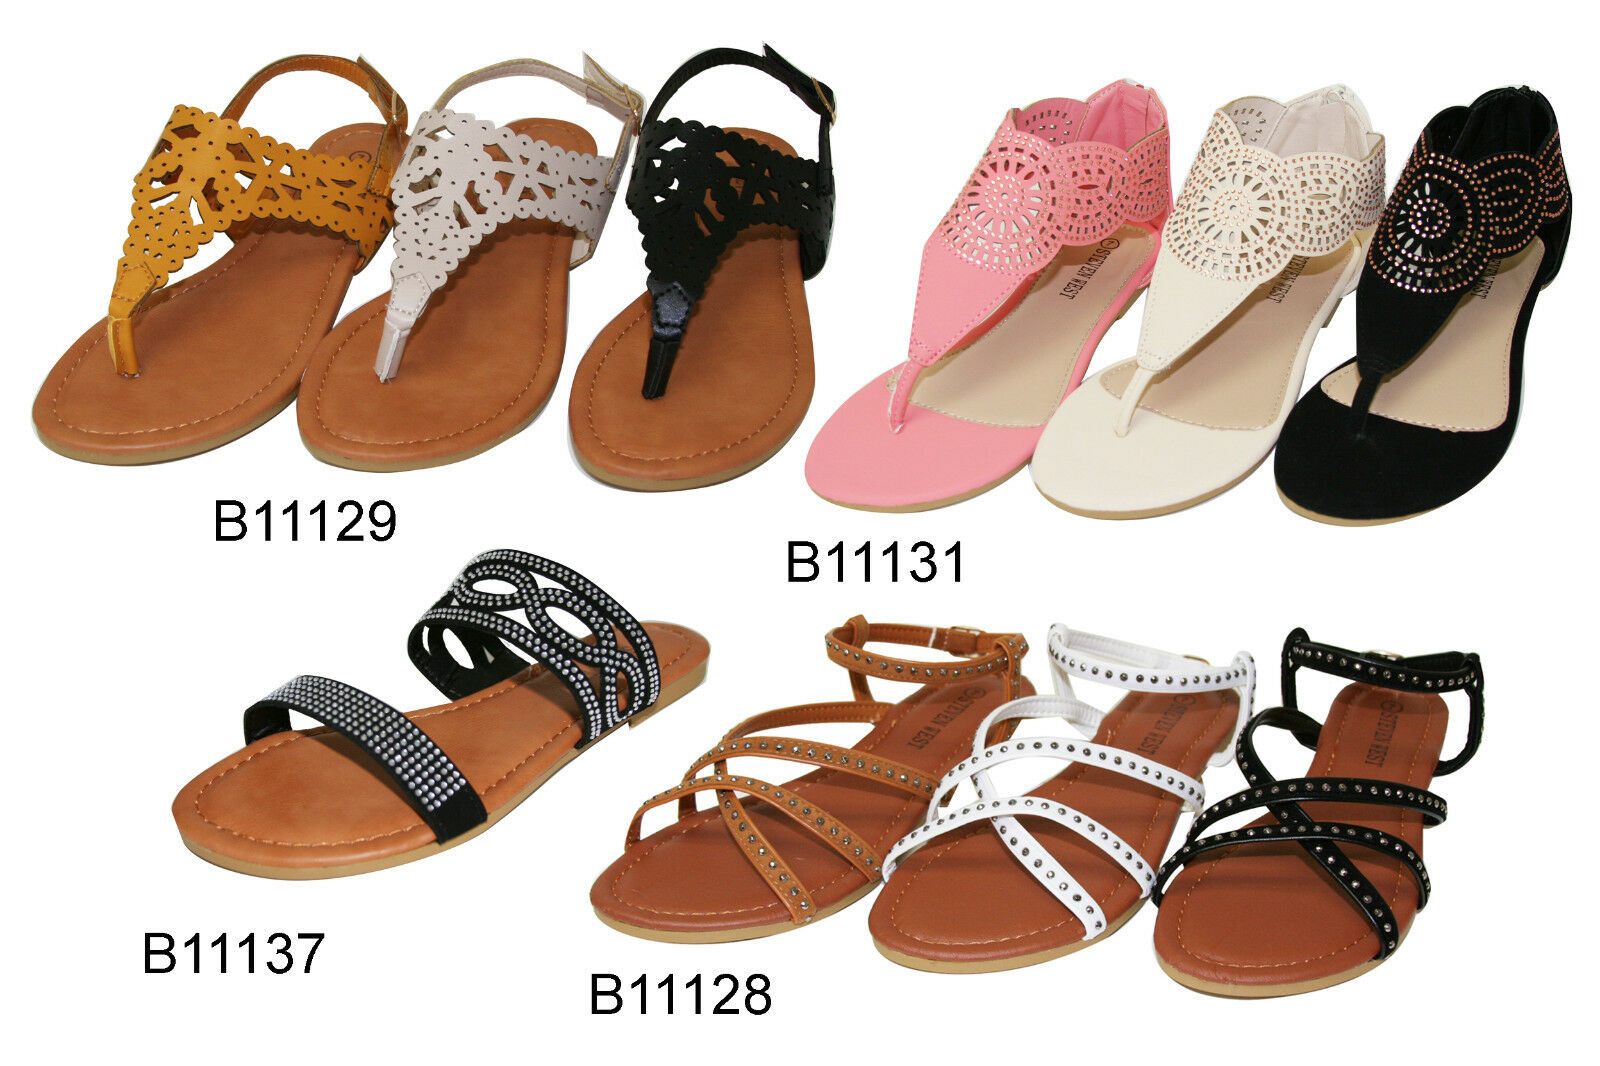 dff549950e0a Details about Women s Strappy Summer Shoes Gladiator Flats Sandals (B11128 29 31 37)